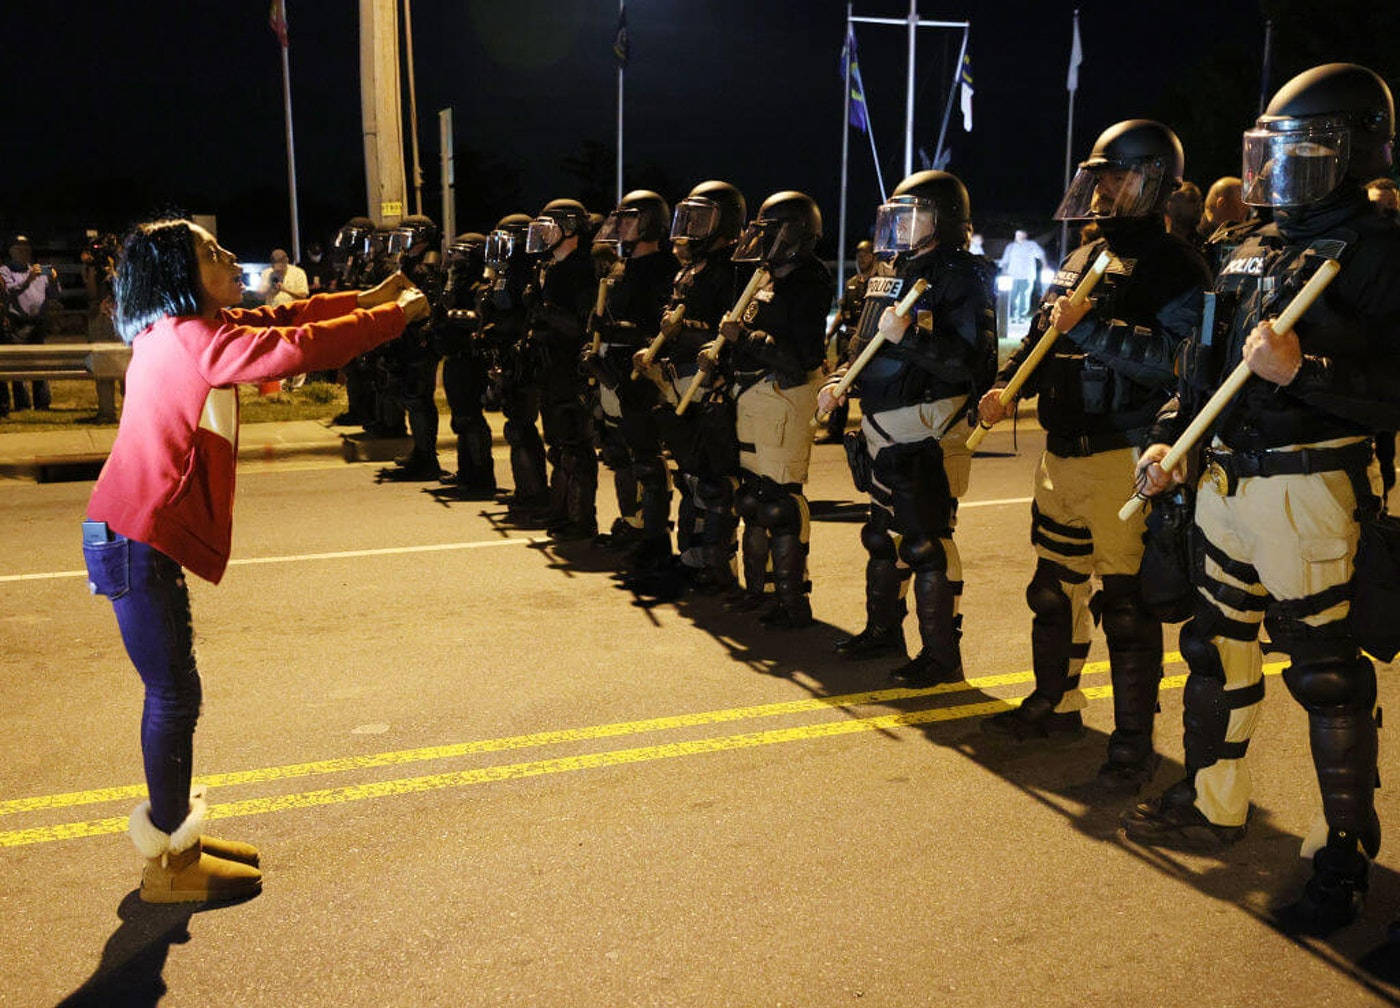 ELIZABETH CITY, NORTH CAROLINA - APRIL 27: Patrice Revelle stands in front of police in riot gear as they force people off a street as they protest the killing of Andrew Brown Jr. on April 27, 2021 in Elizabeth City, North Carolina. The police were enforcing an 8 pm curfew announced after the shooting death of Brown by Pasquotank County Sheriff deputies on April 21.  (Photo by Joe Raedle/Getty Images)